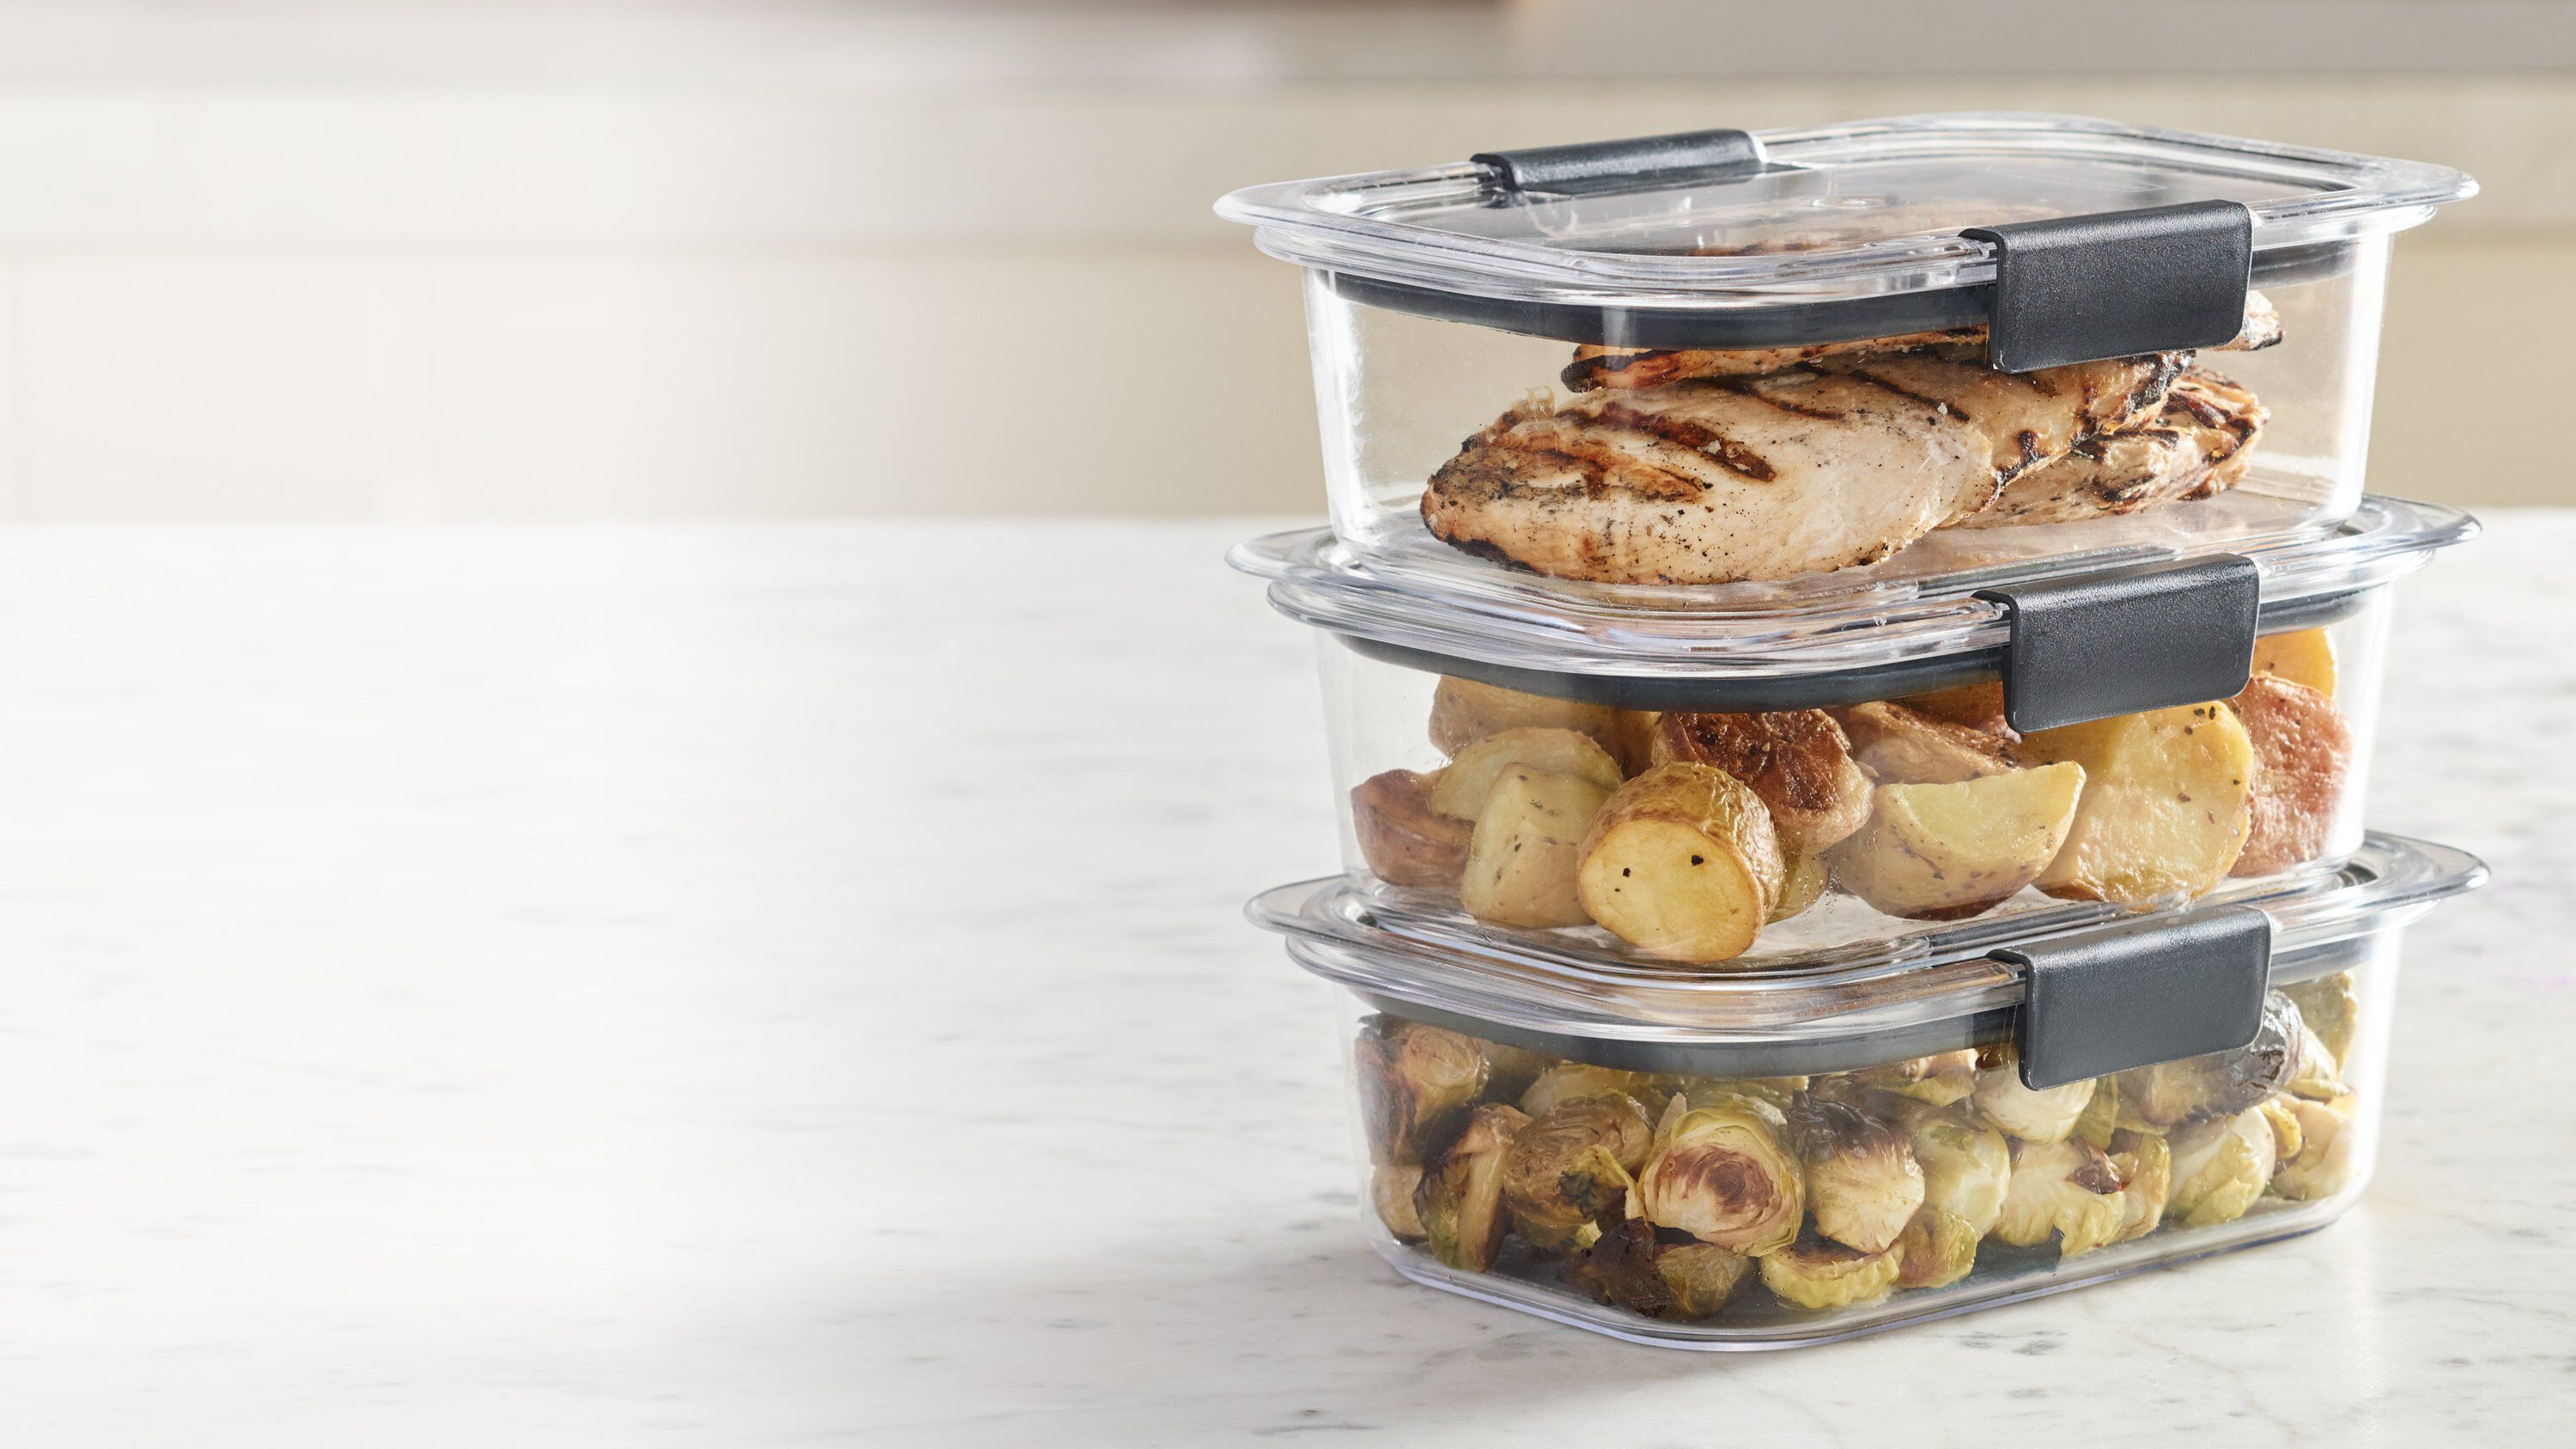 Rubbermaid brilliance food storage containers stacked